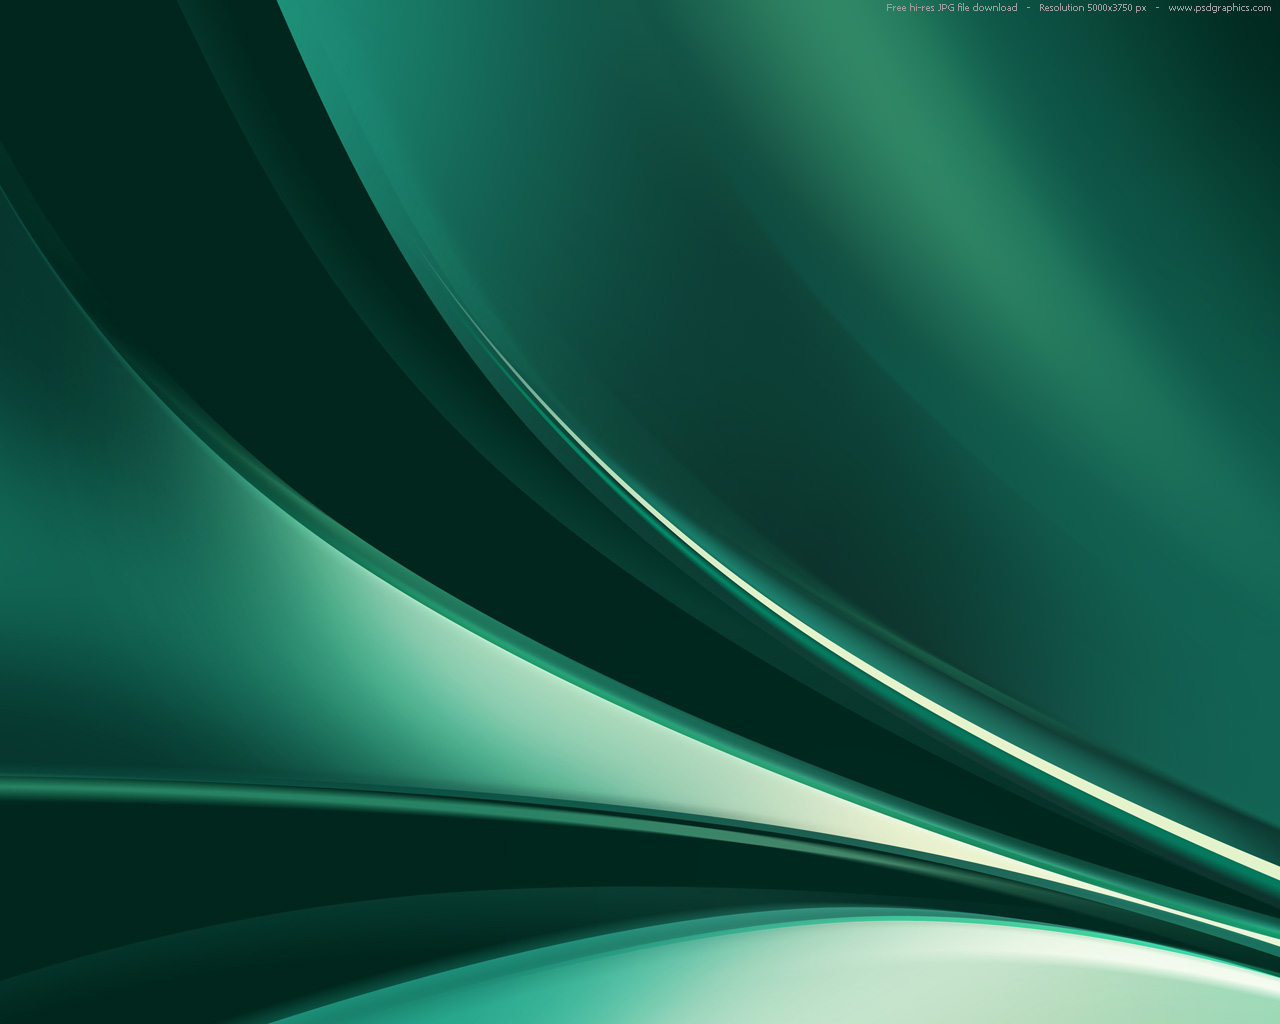 blue and green graphic wallpaper - photo #11